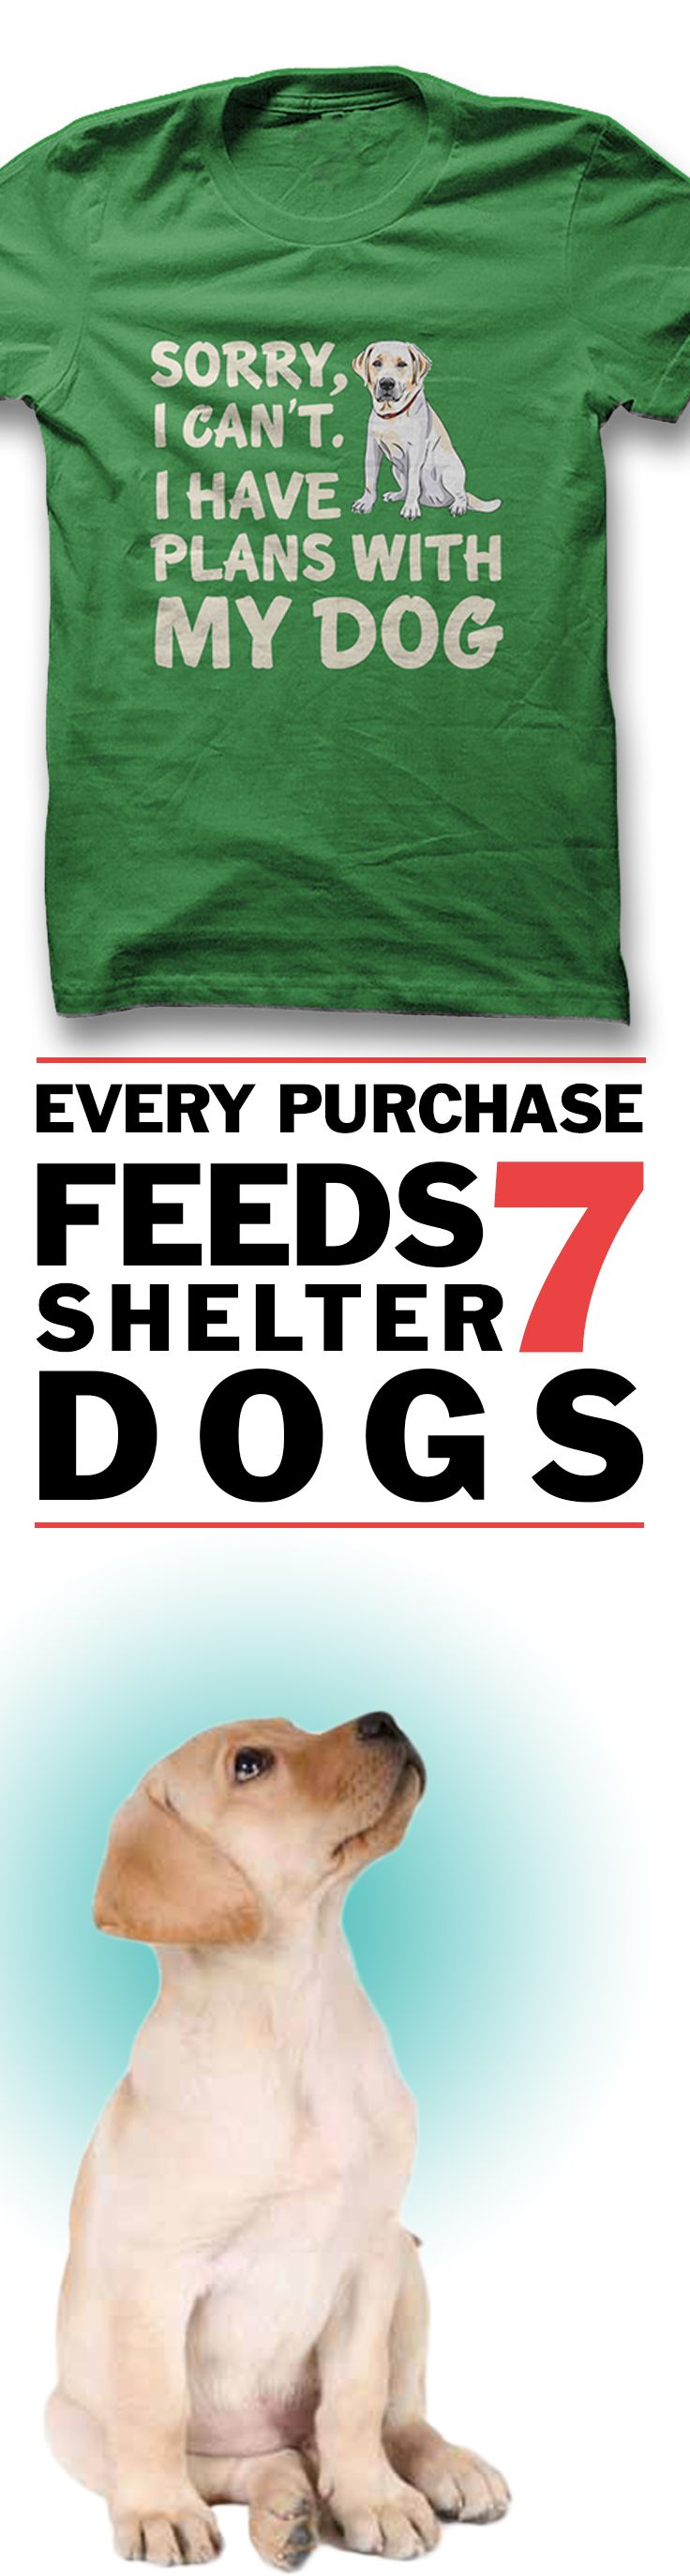 Comment YES if you would wear this!  **Every purchase feeds 7 shelter dogs!